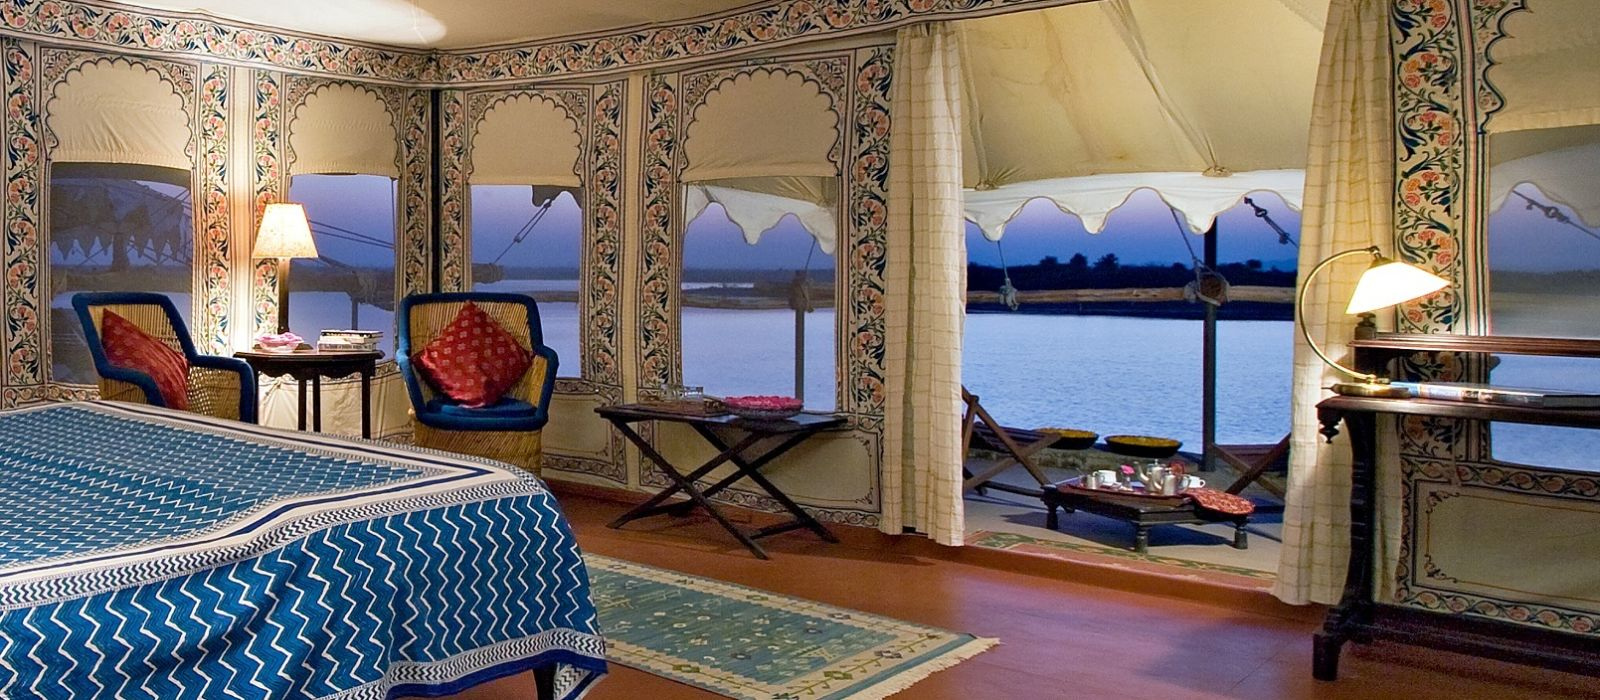 Hotel Chhatra Sagar North India